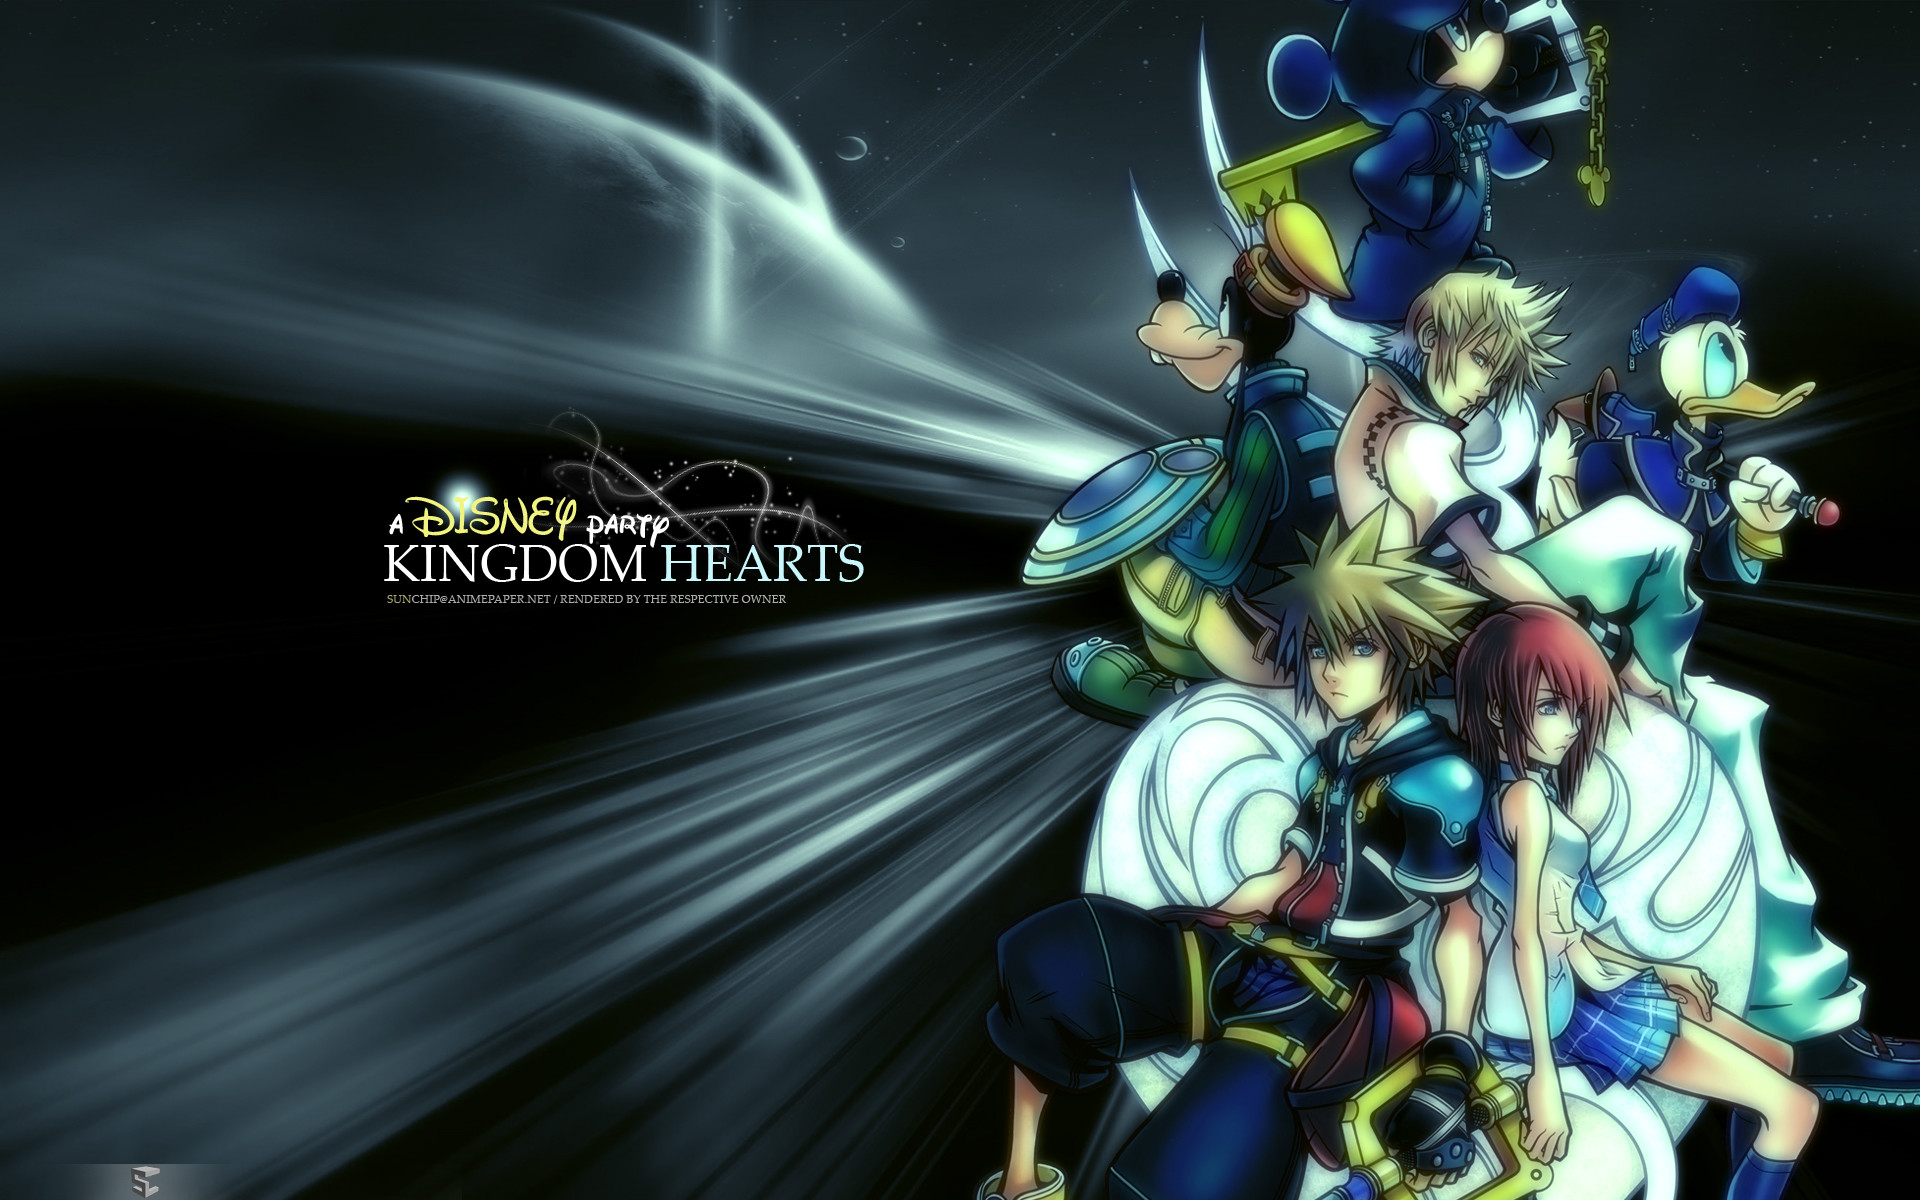 1920x1200 Kingdom Hearts : Free PC Game Desktop Background 04 | Imagez Only